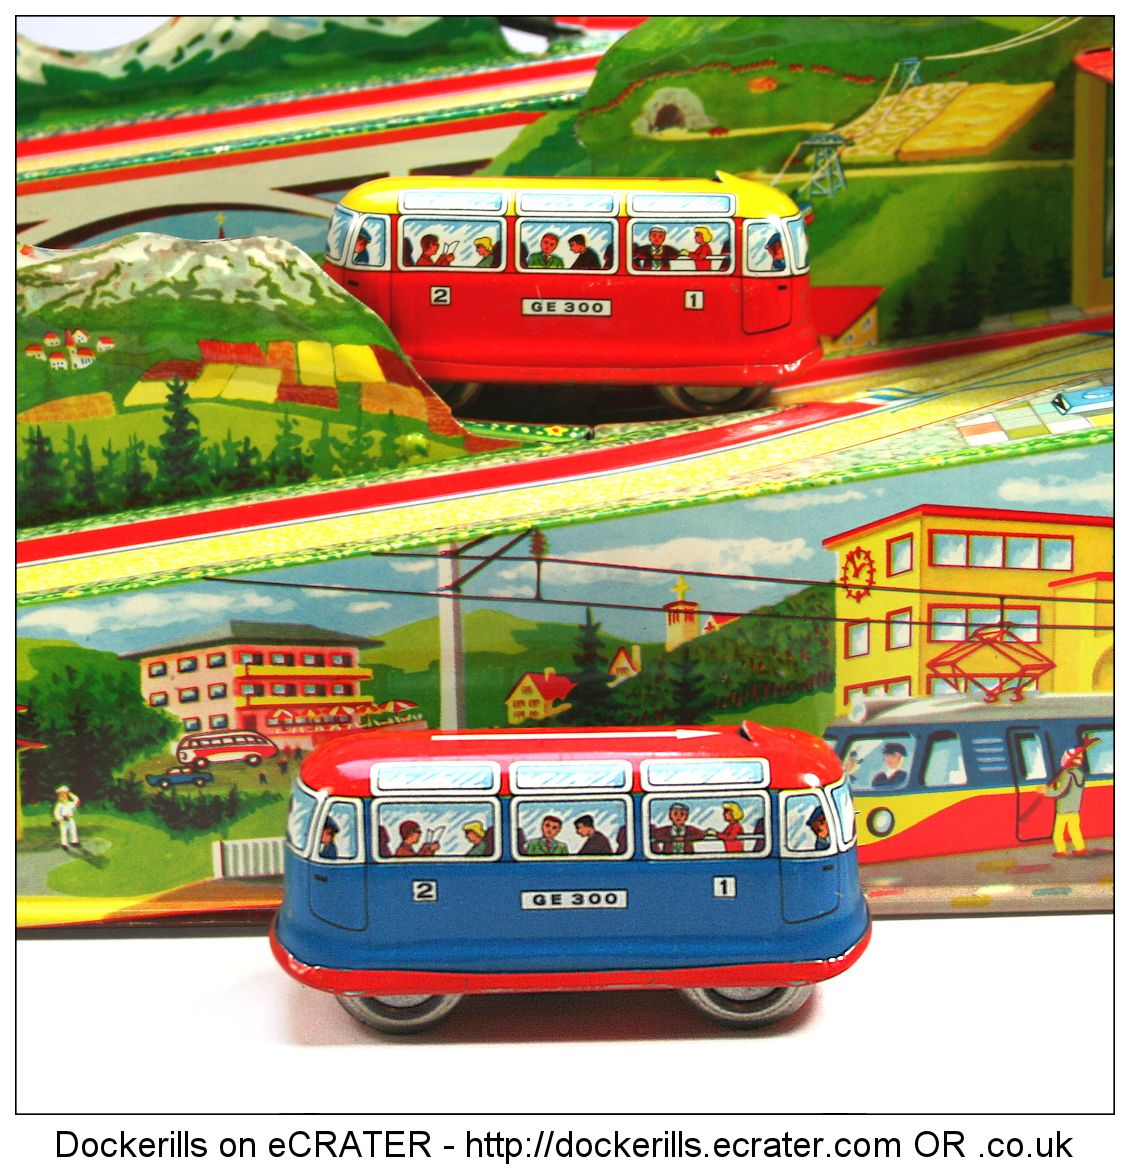 alpine express 300 technofix west germany picture 2 of 4 vintage tin litho tin plate toy. Black Bedroom Furniture Sets. Home Design Ideas